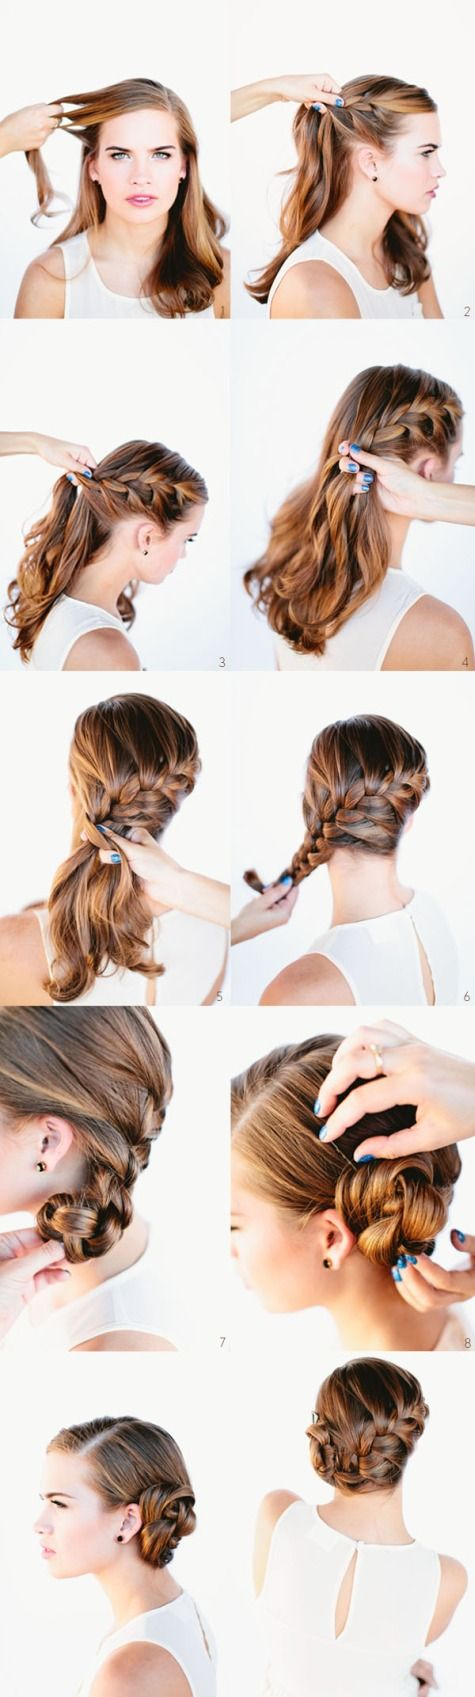 French Braid Bun Hair Tutorial 22 Braid Hairstyle Tutorials You Should See